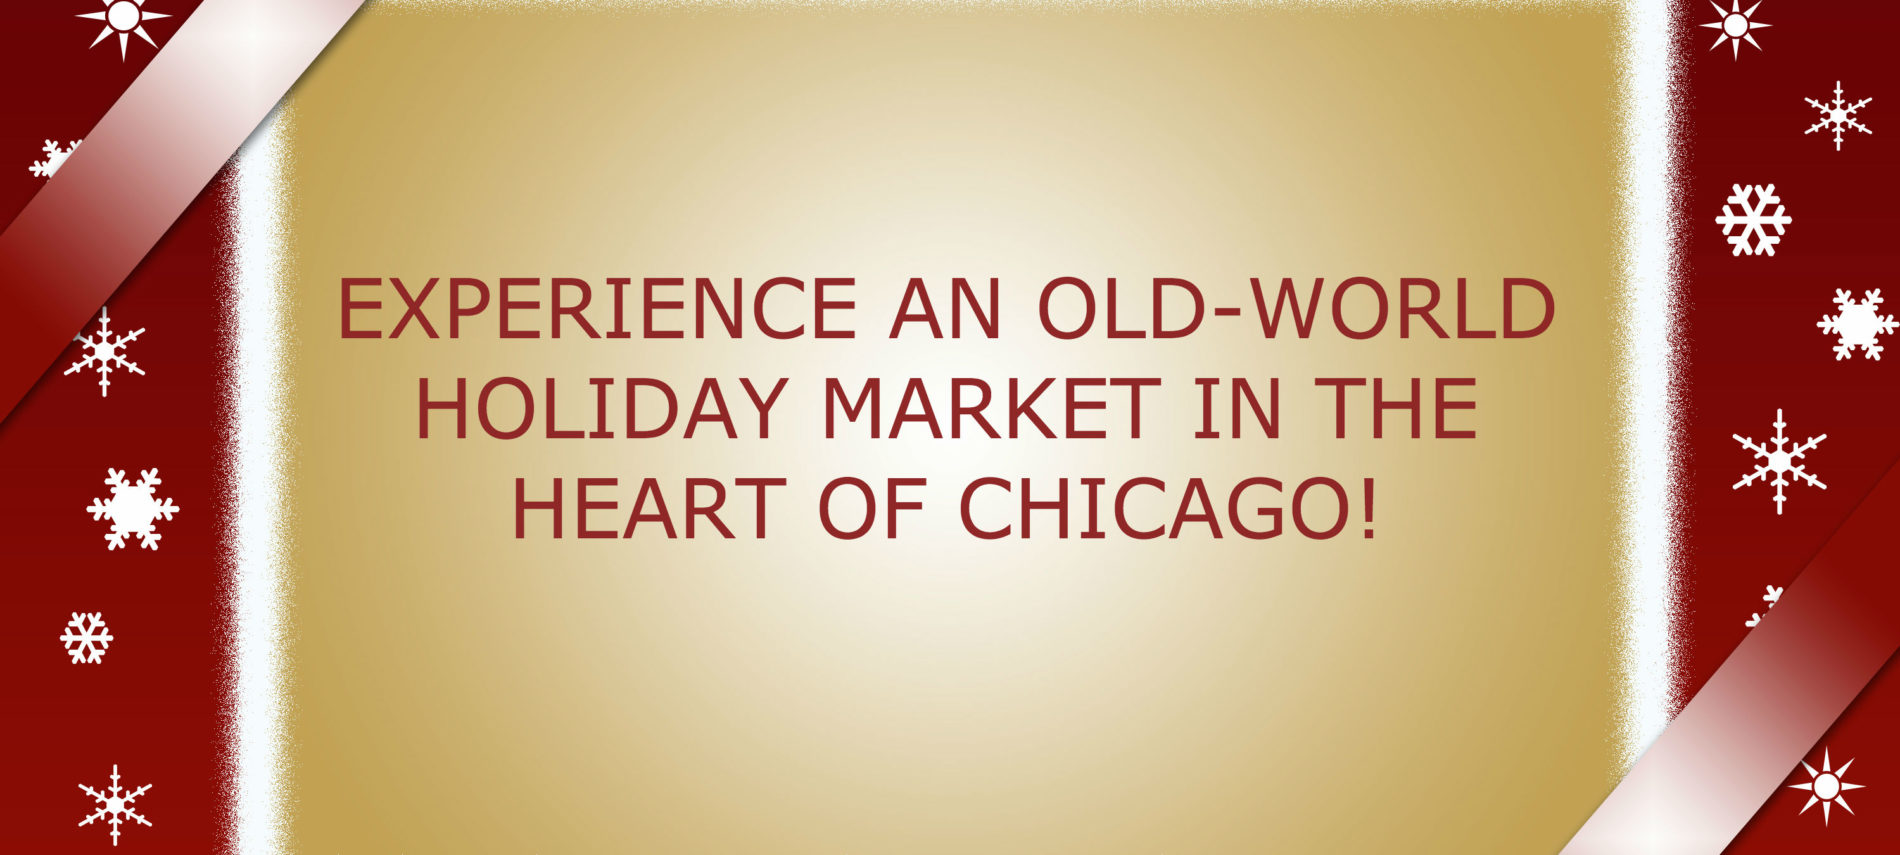 "HOLIDAY PHOTO FRAME WITH TYPE INSIDE SAYING: ""EXPERIENCE AN OLD WORLD HOLIDAY MARKET IN THE HEART OF CHICAGO."""